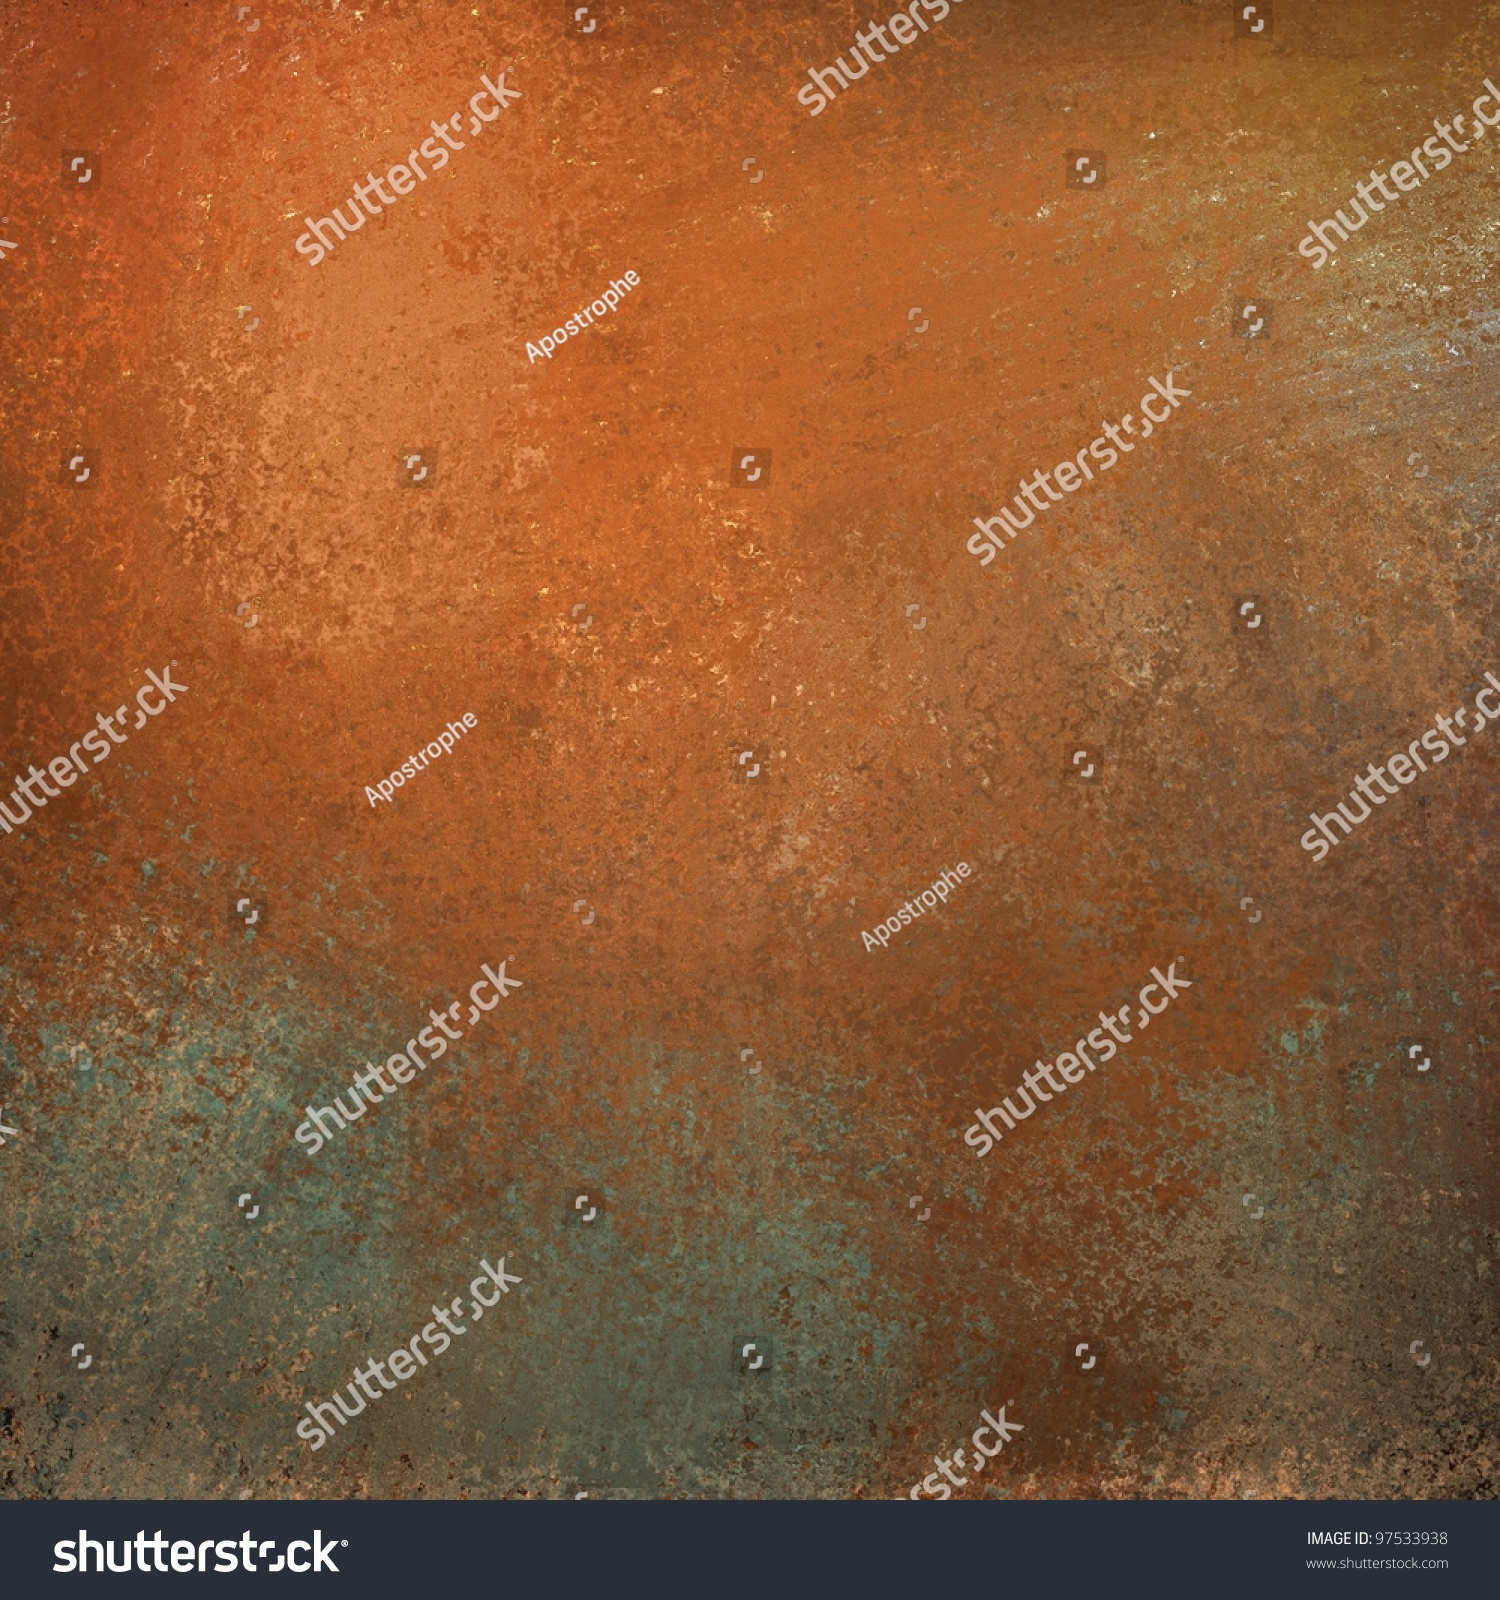 abstract burnt orange color splash background with graffiti grunge vintage texture and bright highlight on gray